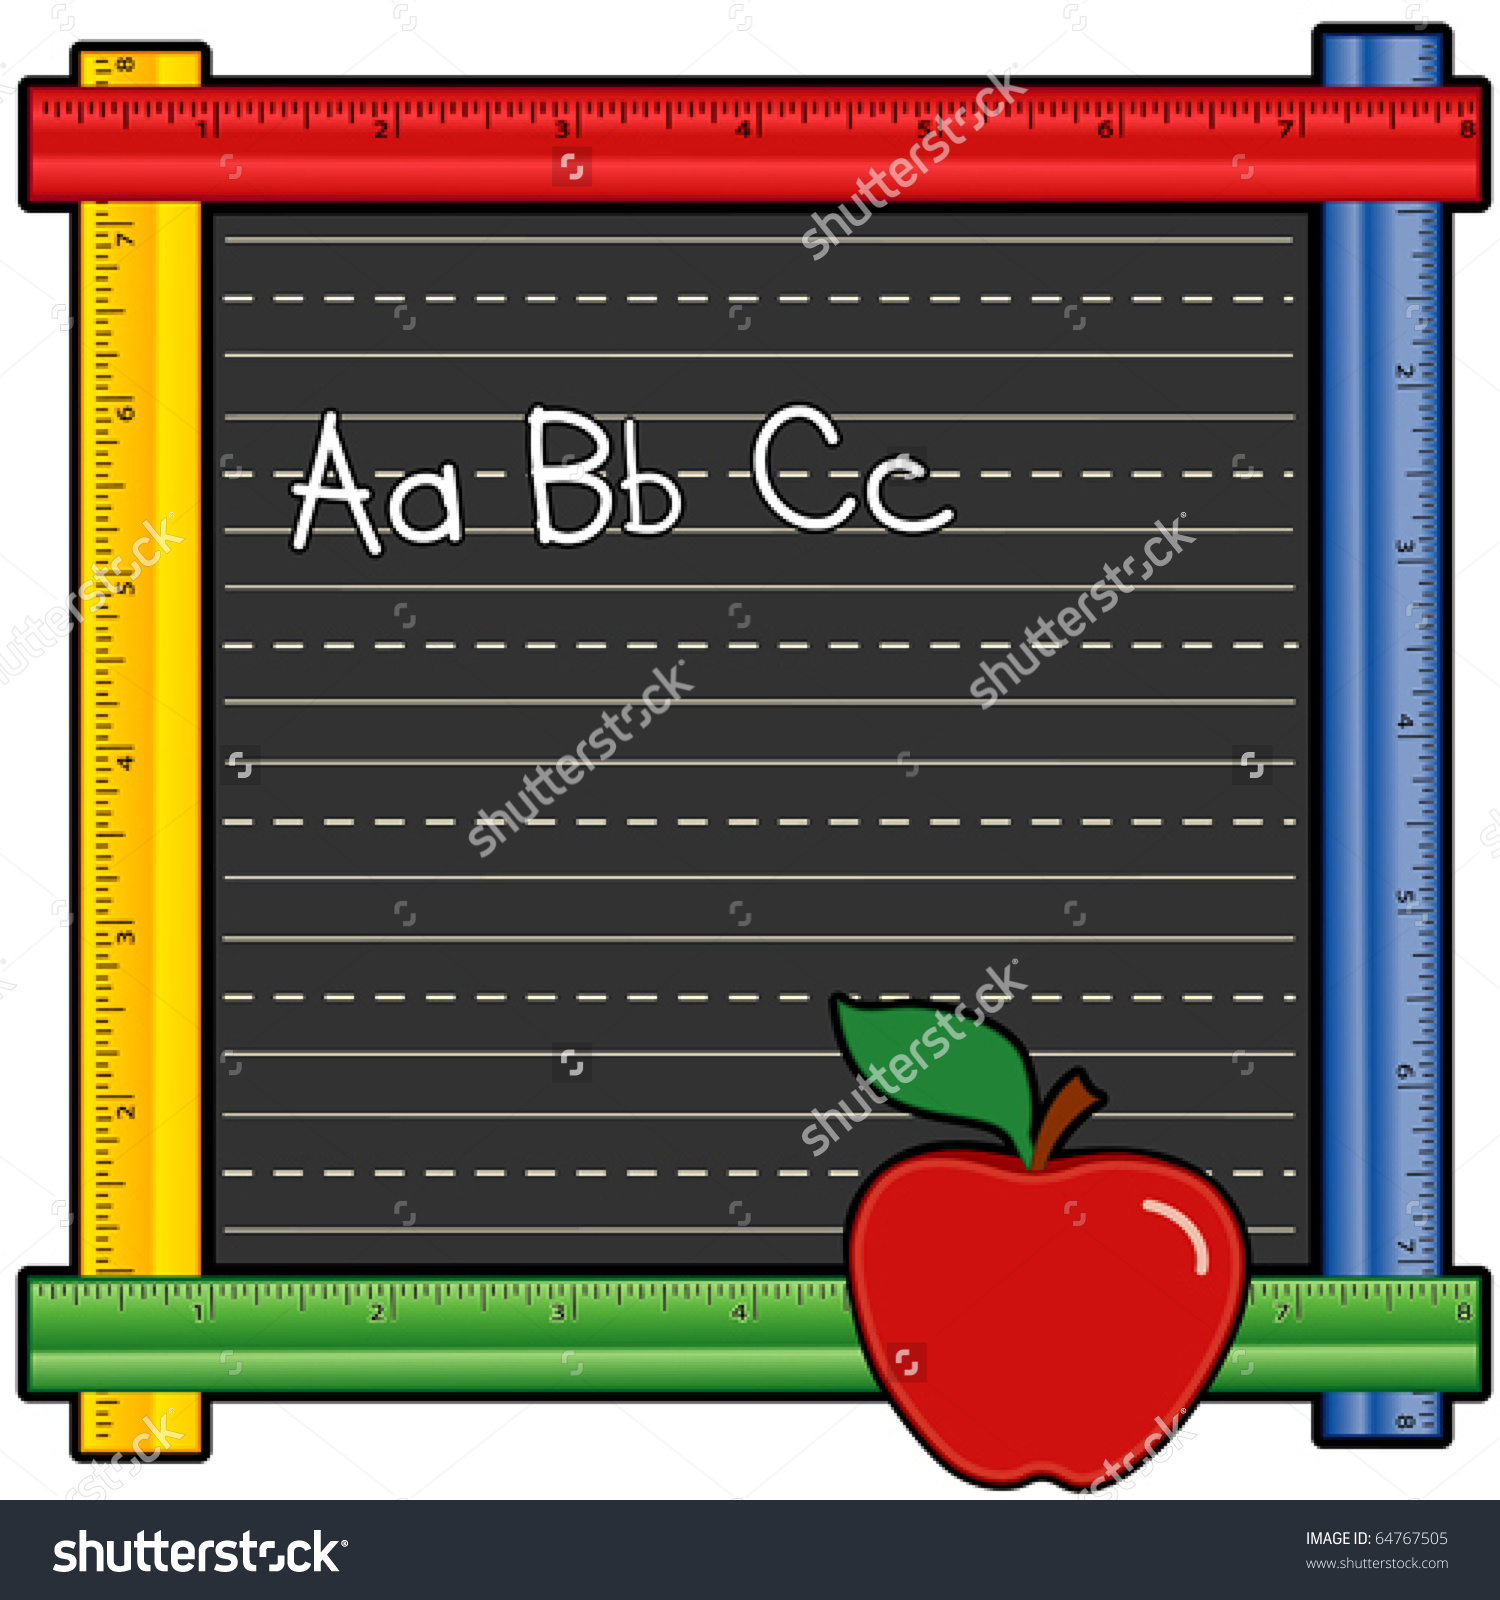 Ruler Frame Chalkboard Abc Chalk Writing Stock Vector 64767505 ... stock